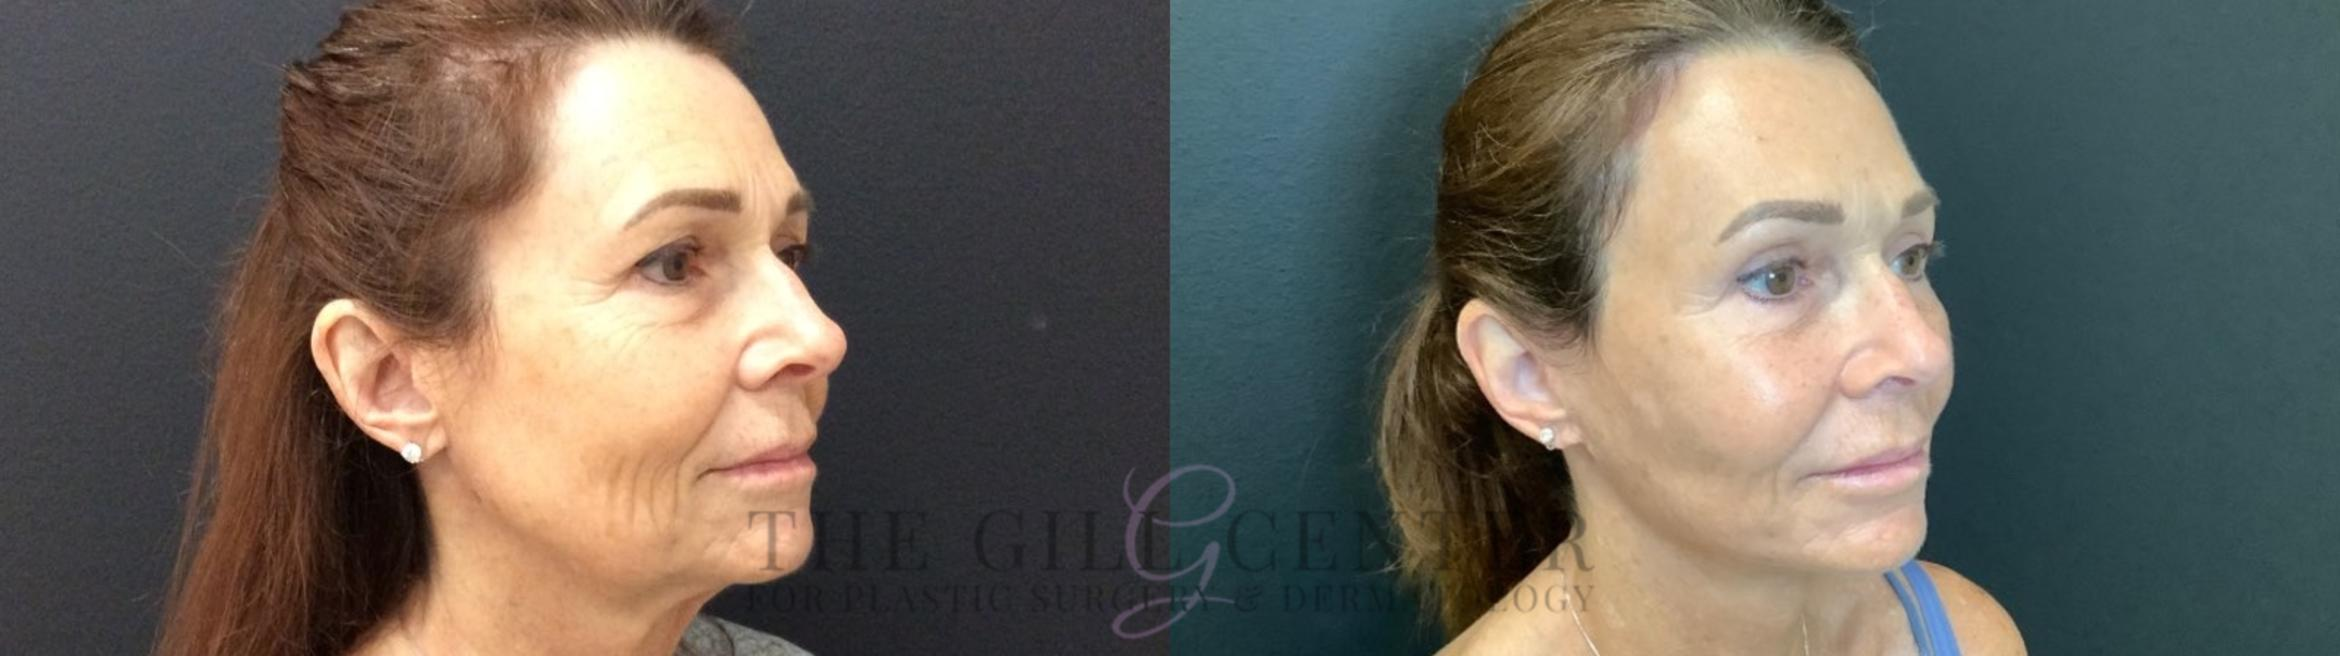 Face & Neck Lift Case 439 Before & After Right Side | Shenandoah, TX | The Gill Center for Plastic Surgery and Dermatology